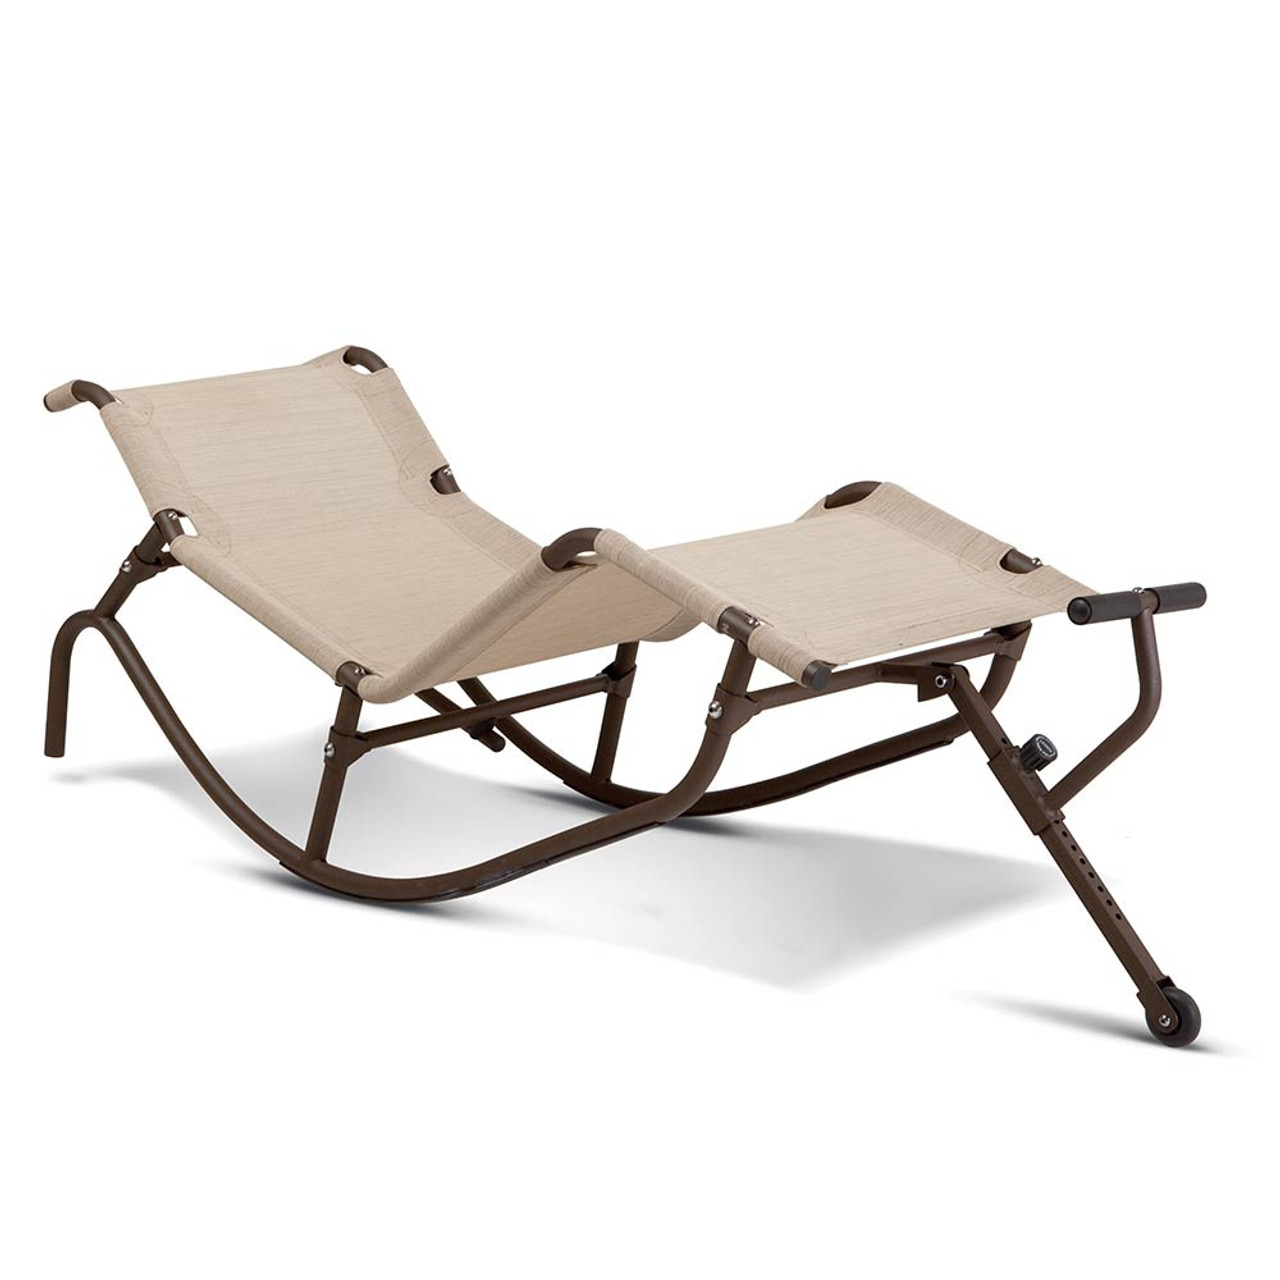 Easy Outdoor Caribbean Lounge Chair Gd 700 Relax In